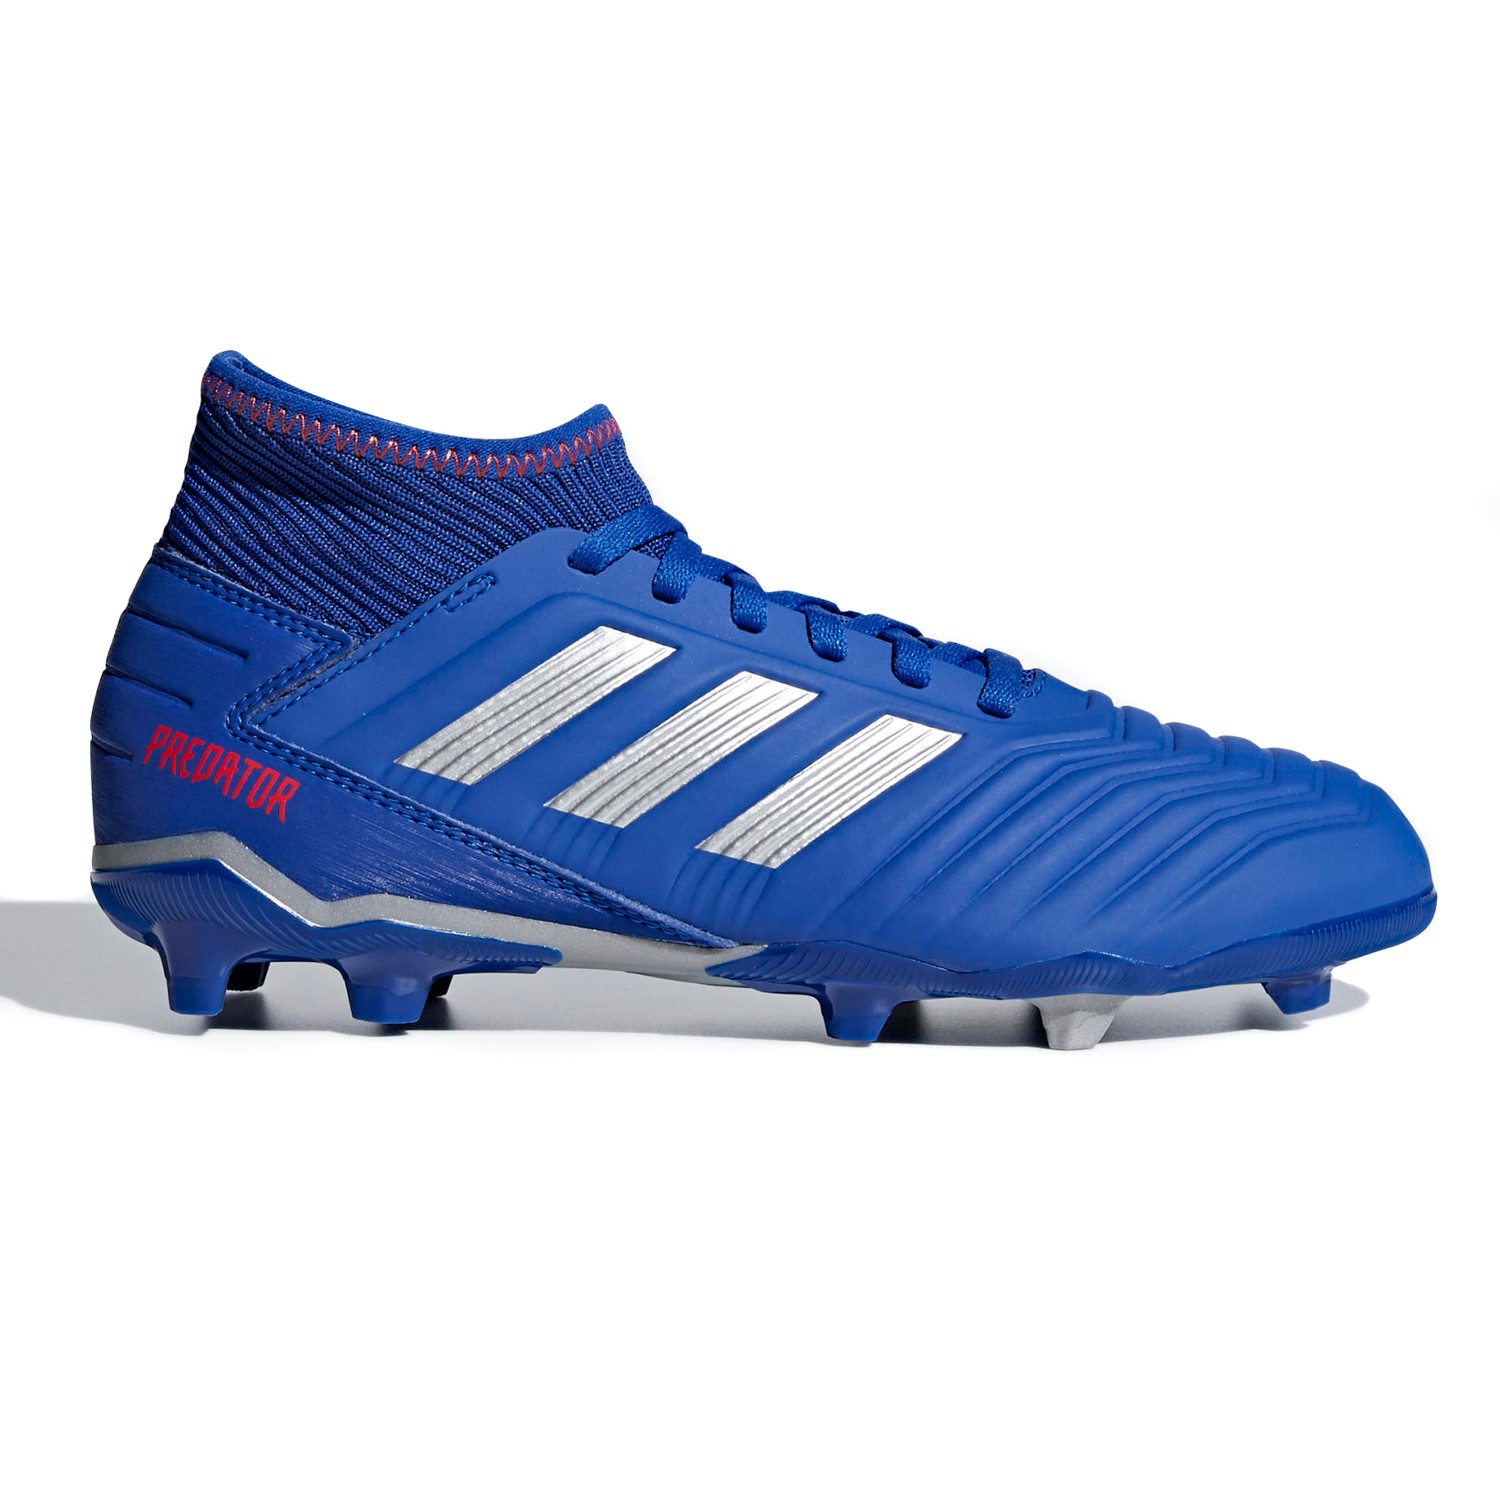 26dee9a3e Adidas Predator 19.3 FG - Kids Boys Football Boots - Blue Silver Active Red